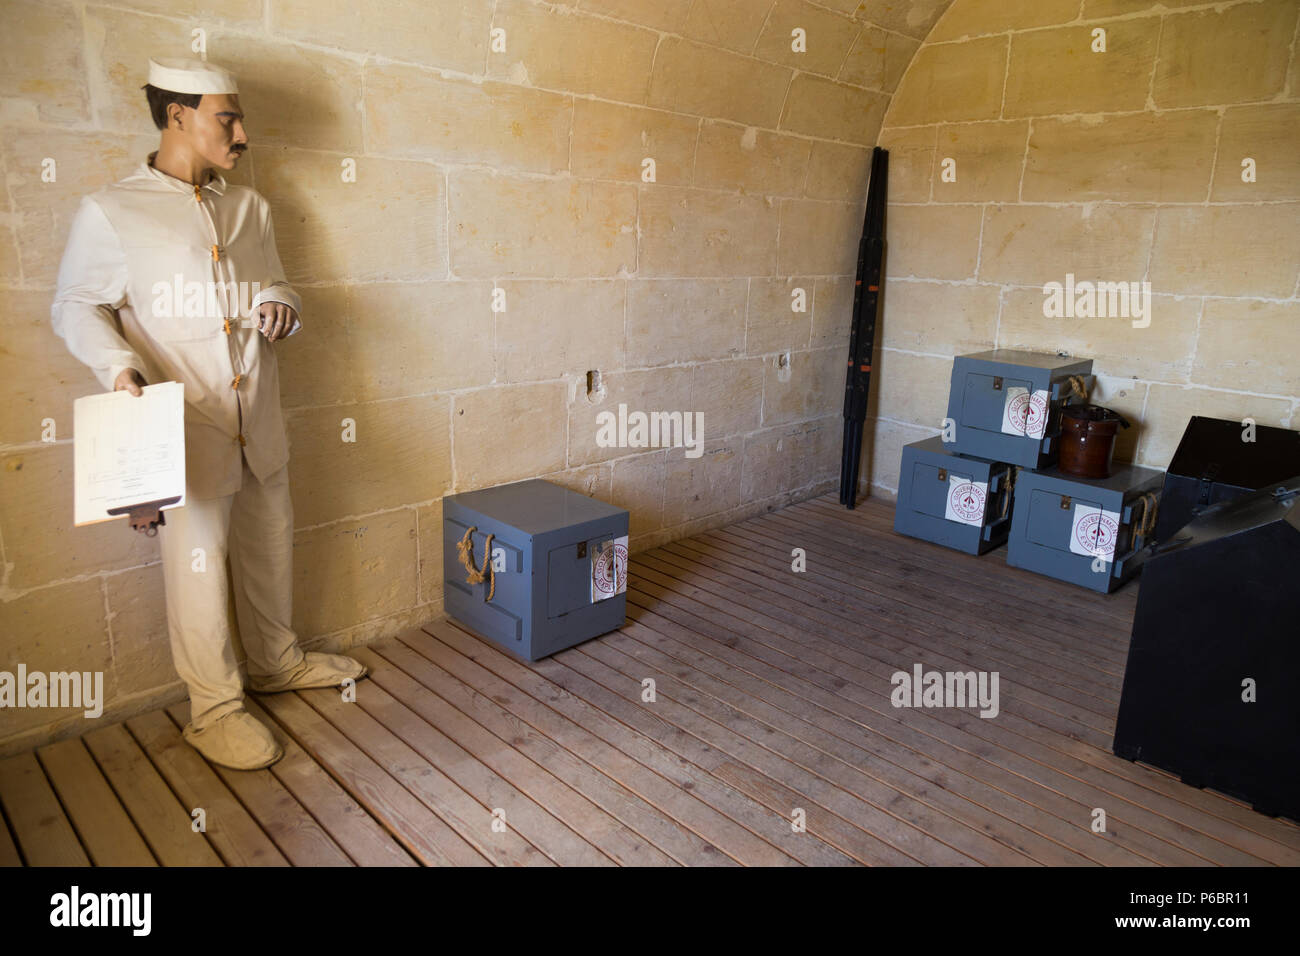 Gunpowder storeroom of the Saluting Battery artillery battery, the guns of which fire the 4pm time signal everyday, in Valletta, Malta. (91) - Stock Image